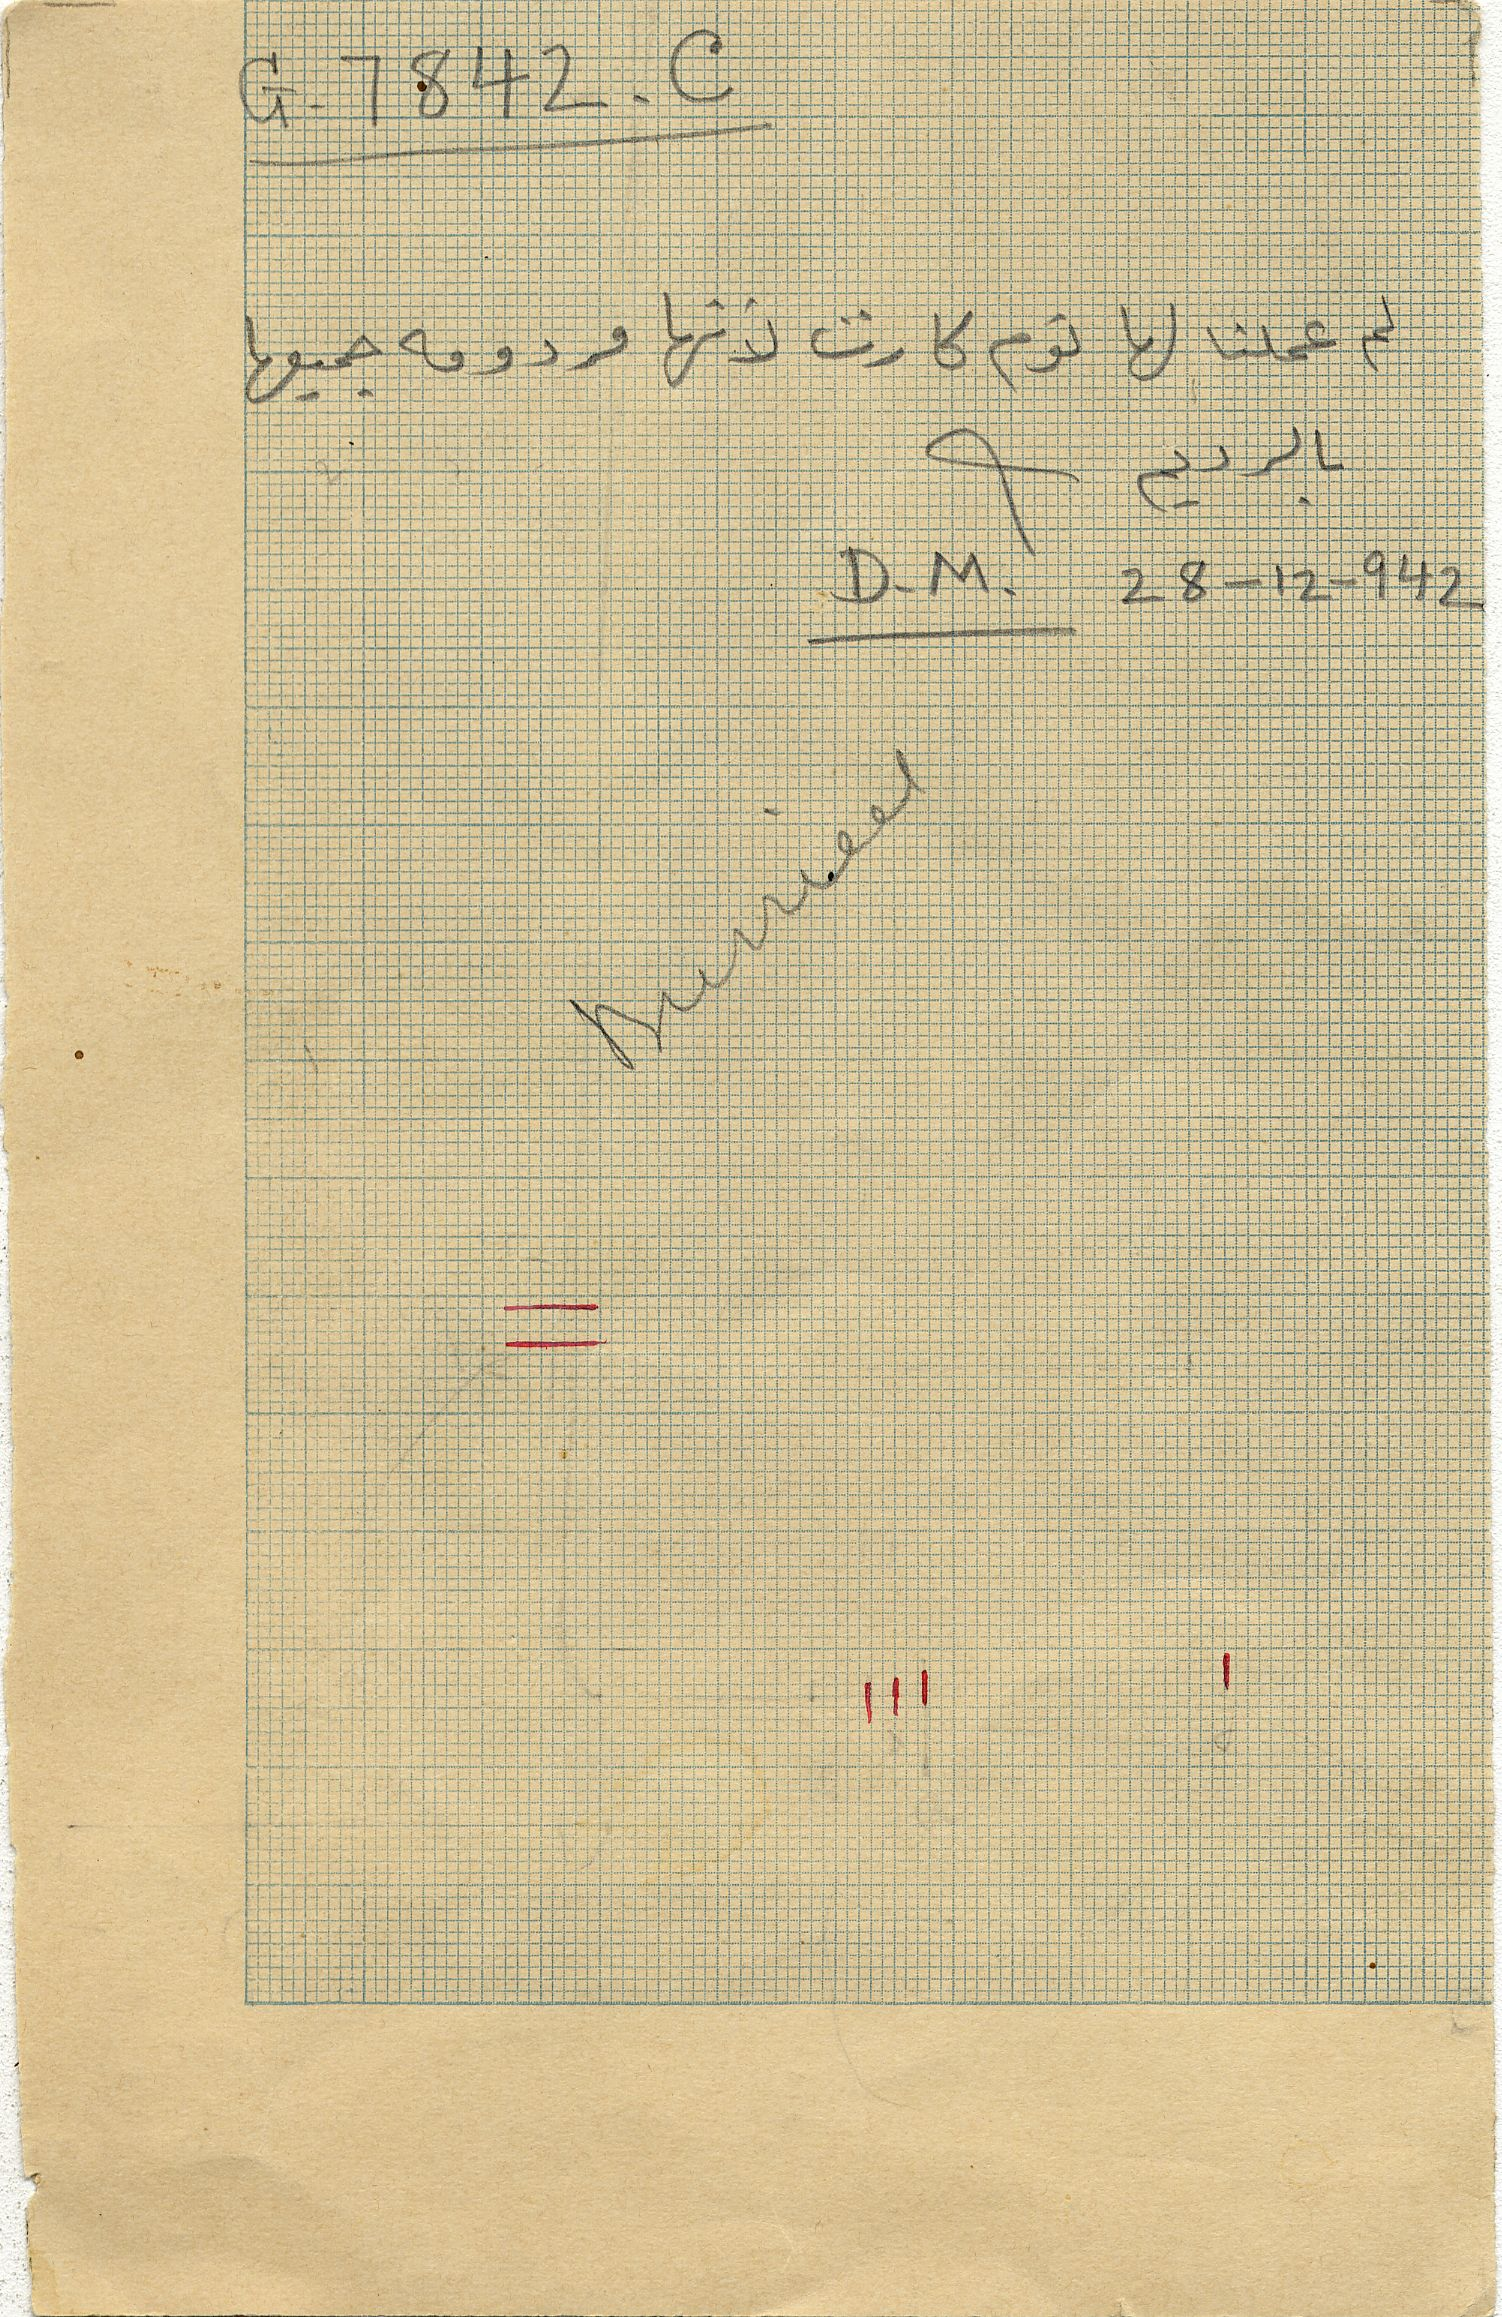 Notes: G 7842, Shaft C, notes (in Arabic)